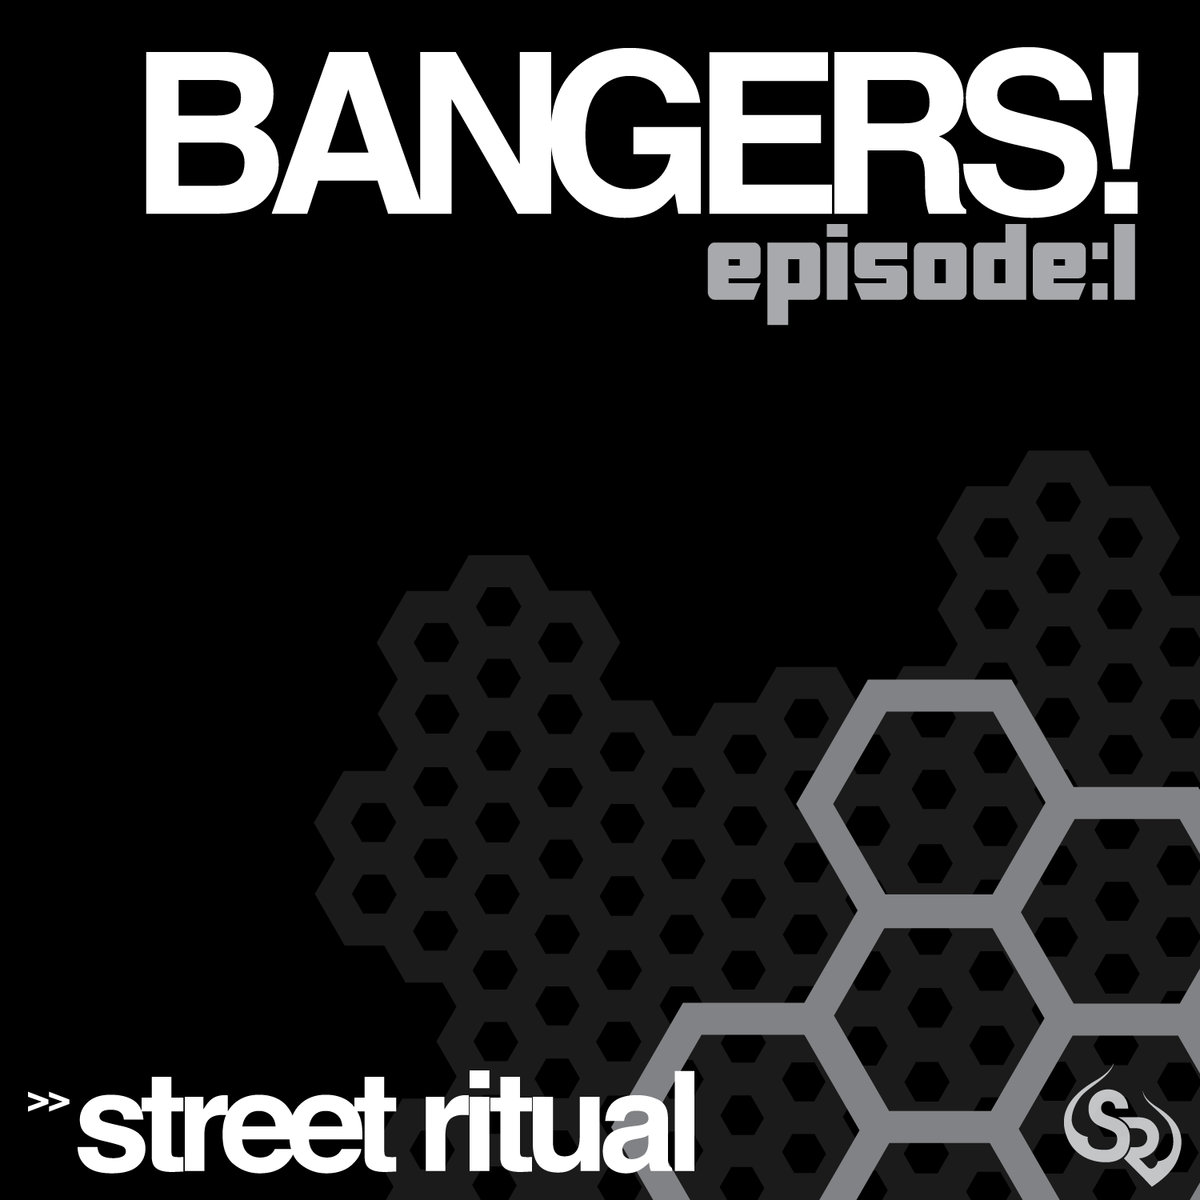 PERICLES - Dune Cruiser @ 'Various Artists - Bangers! Episode:1' album (bass, electronic)